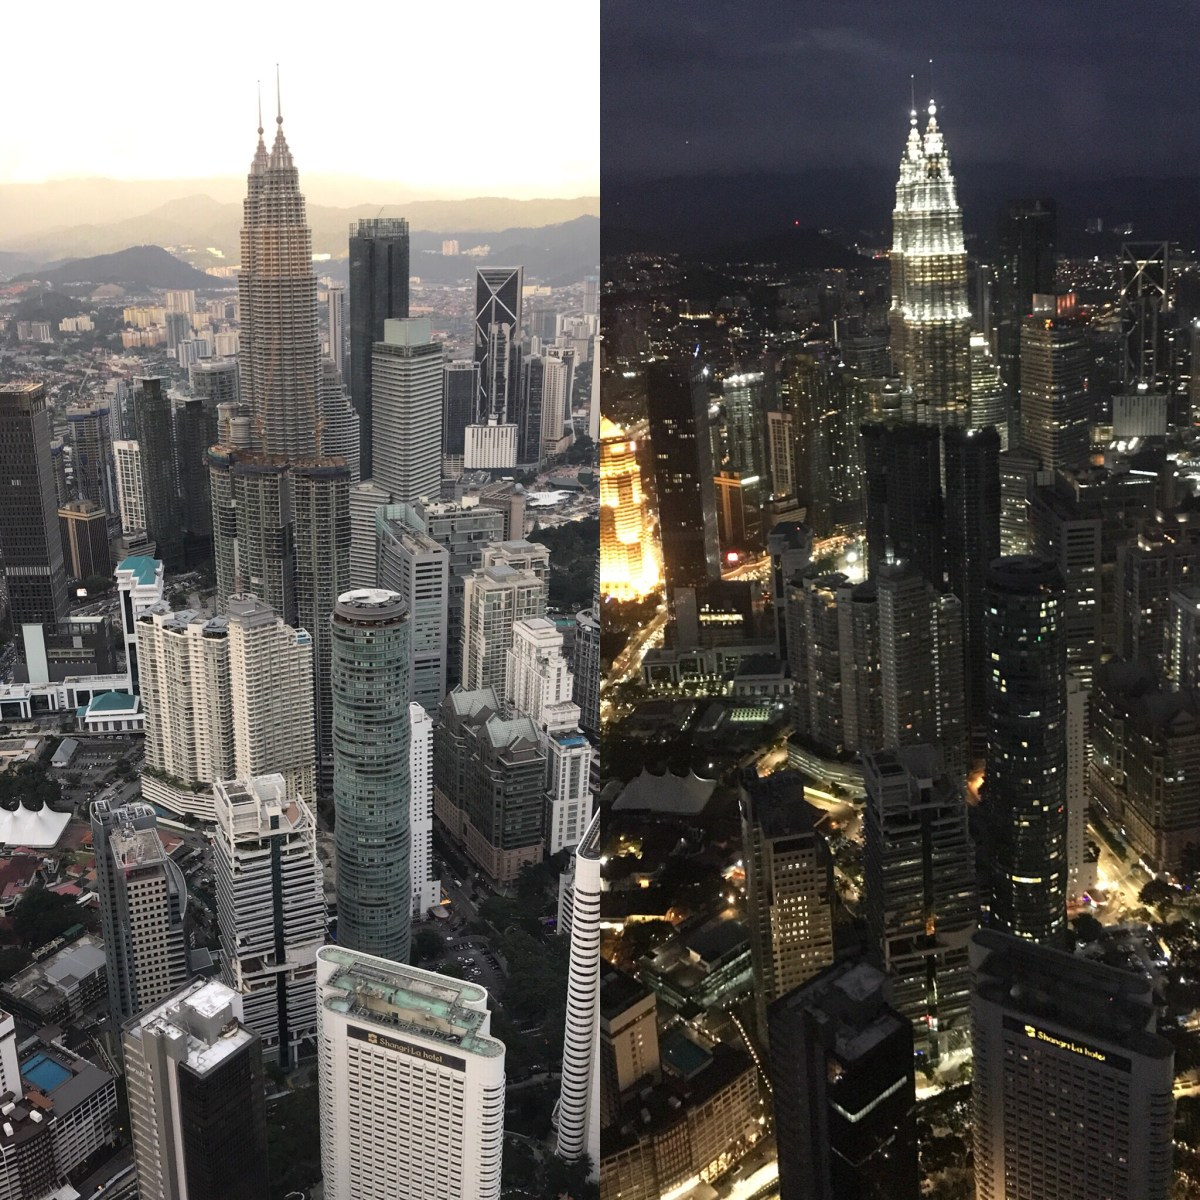 My Sunday Photo: Petronas Twin Towers by day and night